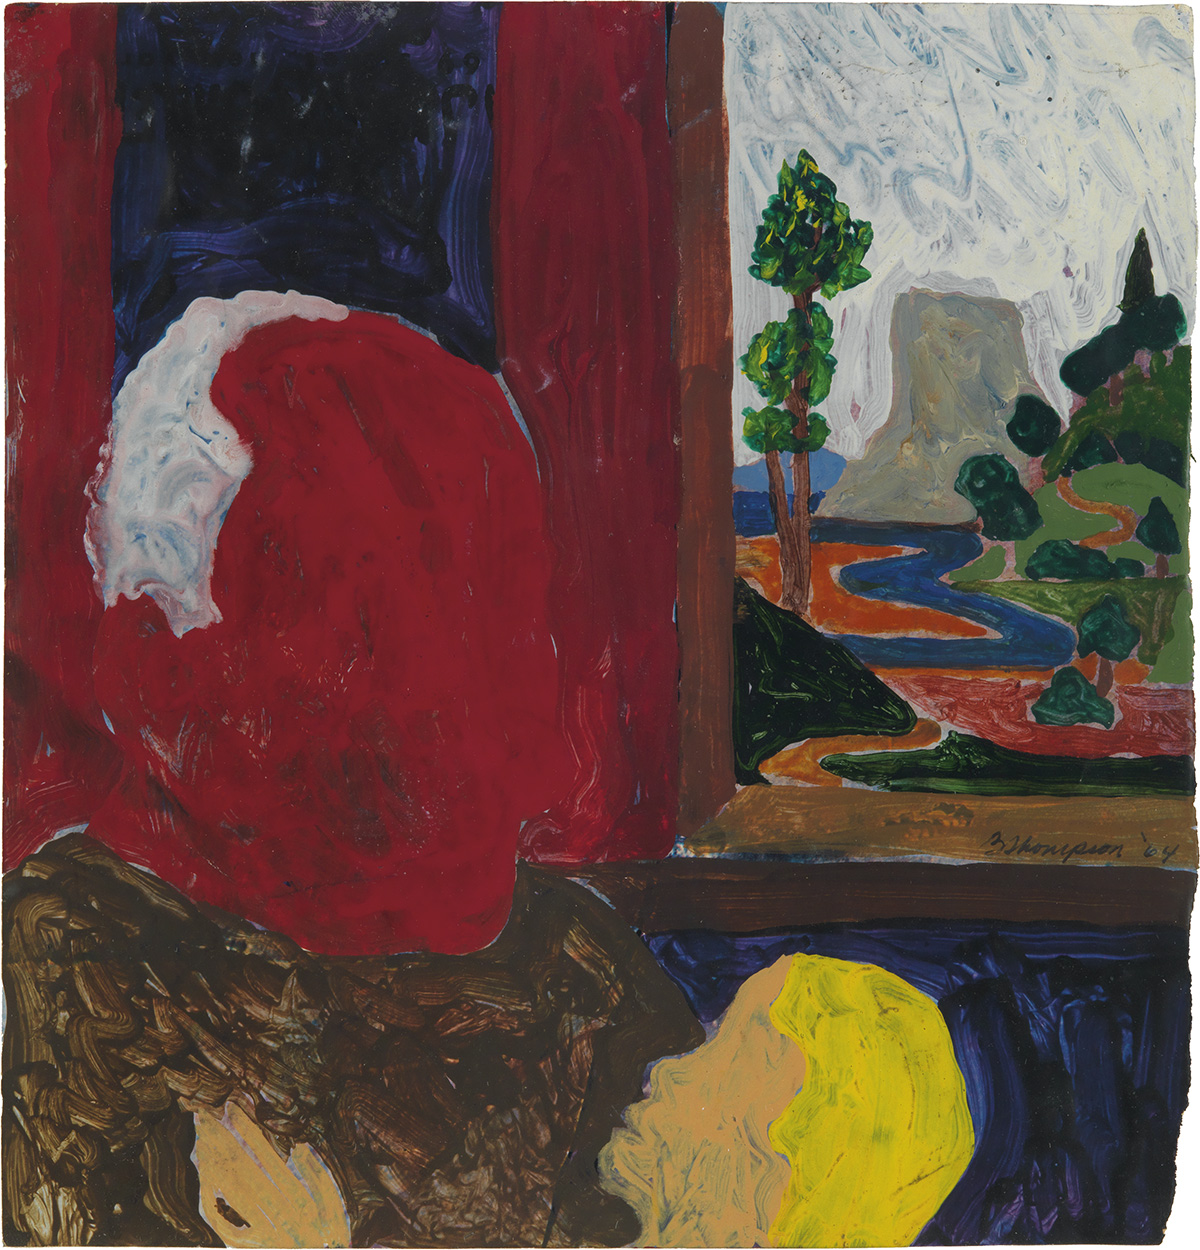 BOB THOMPSON (1937 - 1966) Untitled (Red Man with Child in Landscape).